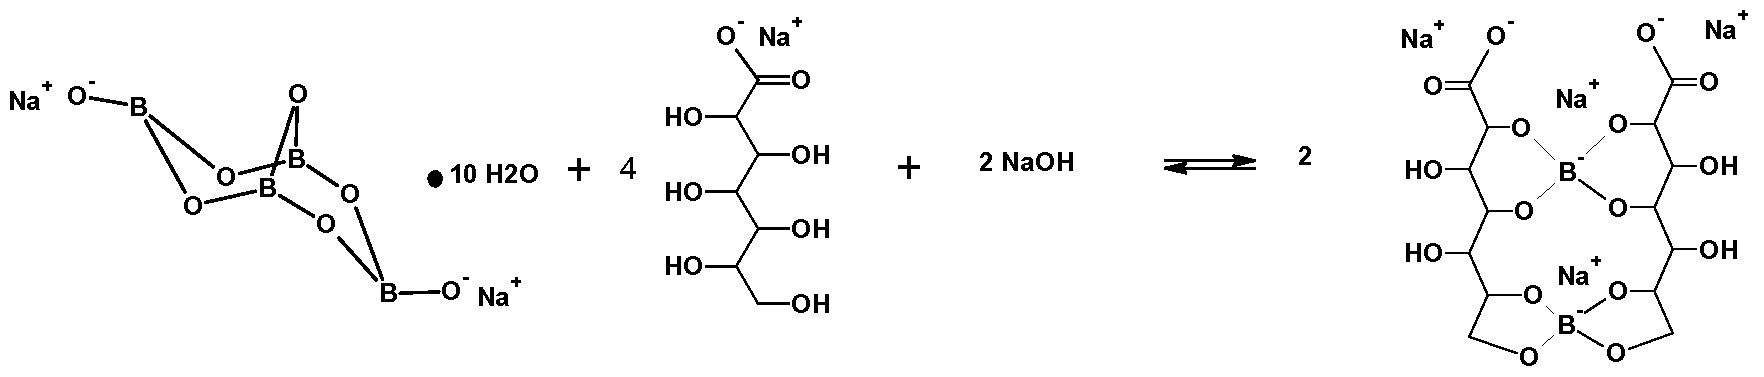 WO2013002901A1 - Cement set retarder based on a borate ester complex and  method using the same - Google Patents